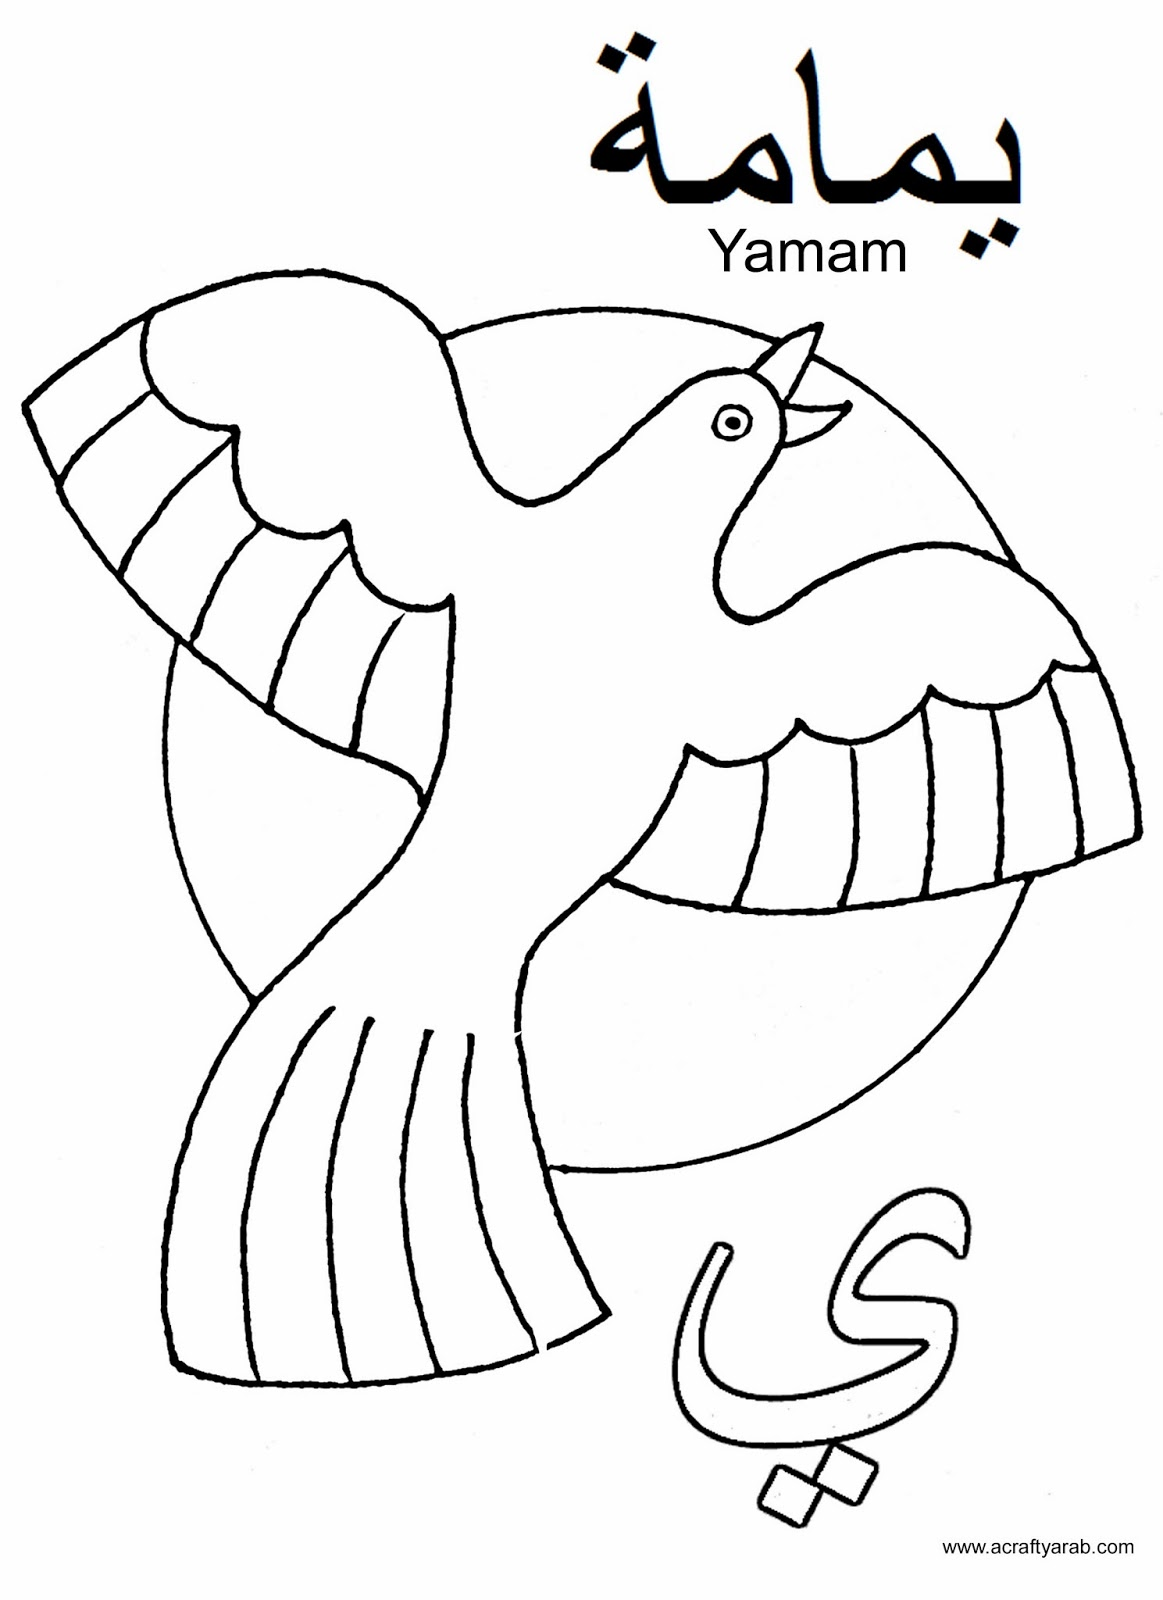 Arabic Alphabet Coloring Pages Ya Is For Yamam